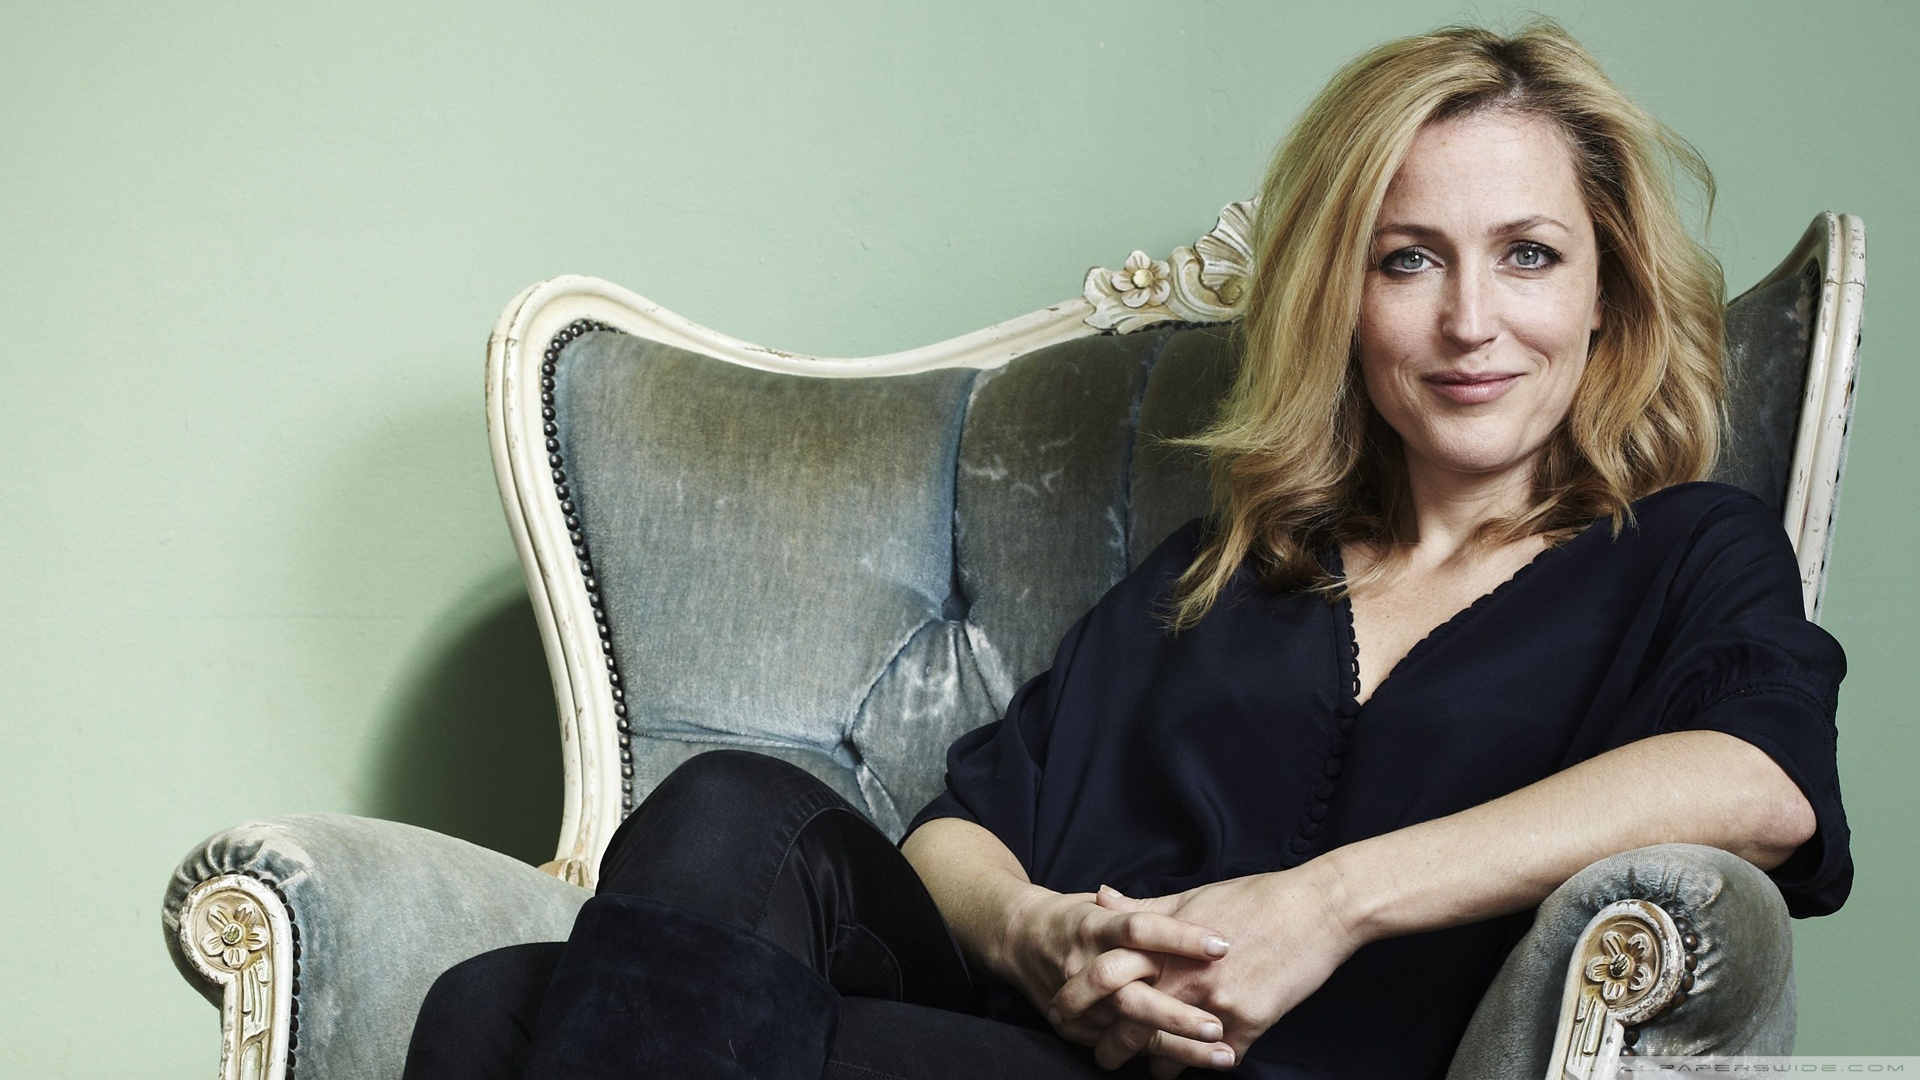 1920x1080 - Gillian Anderson Wallpapers 1